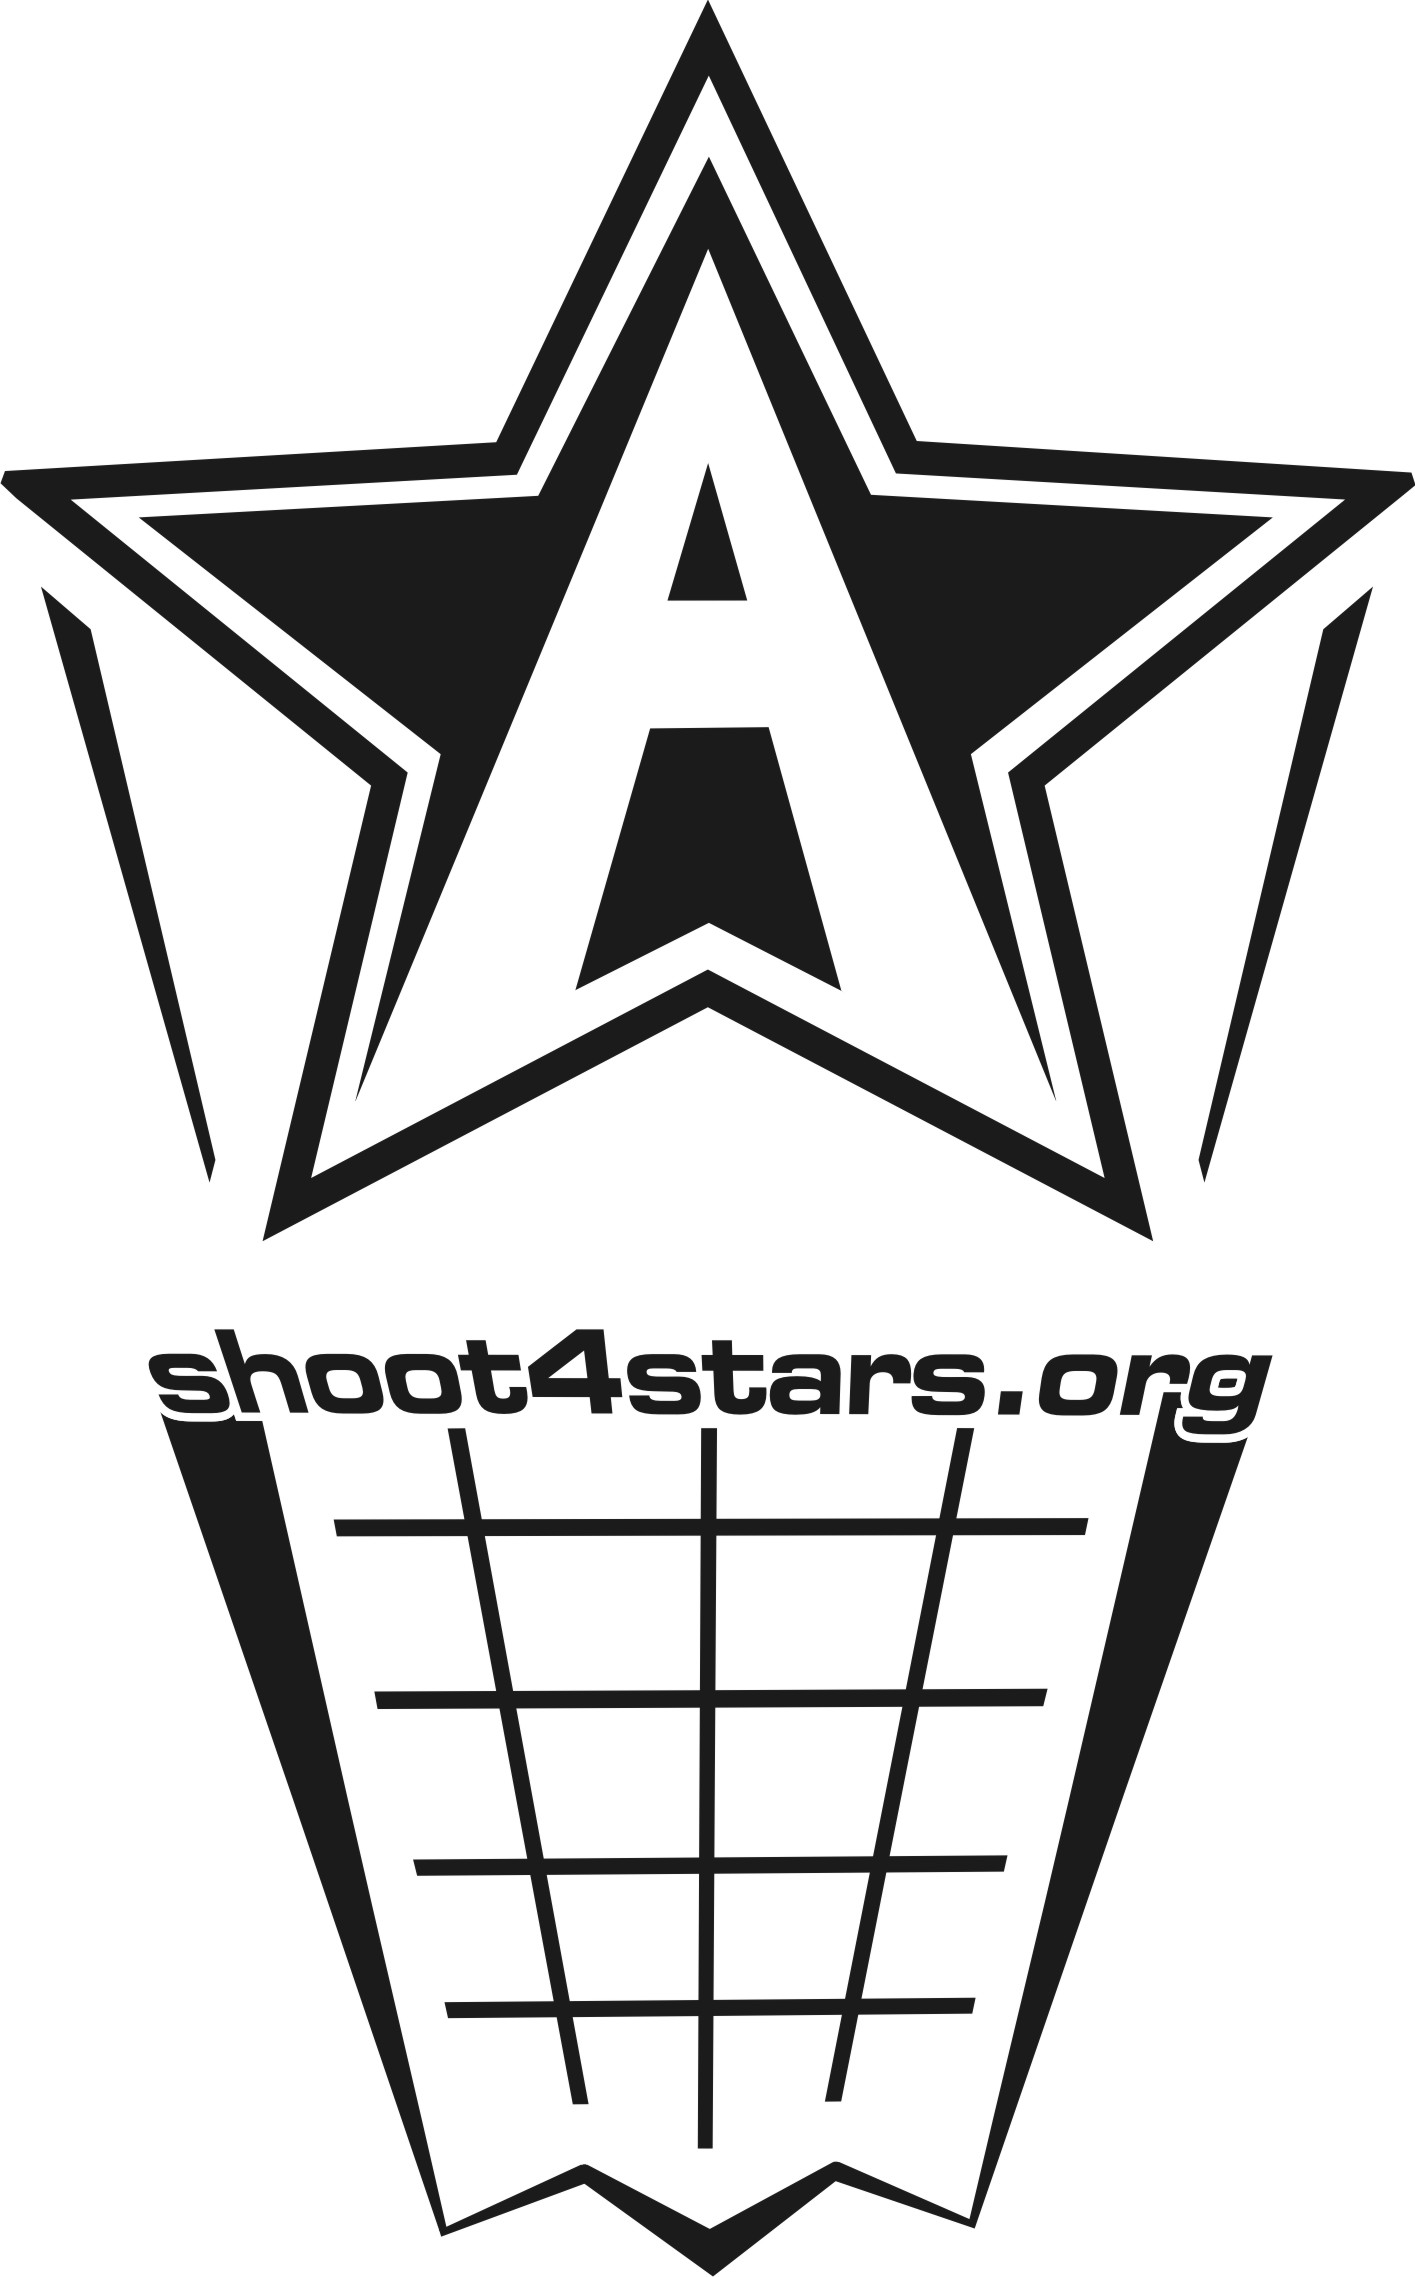 Shoot for the Stars Event